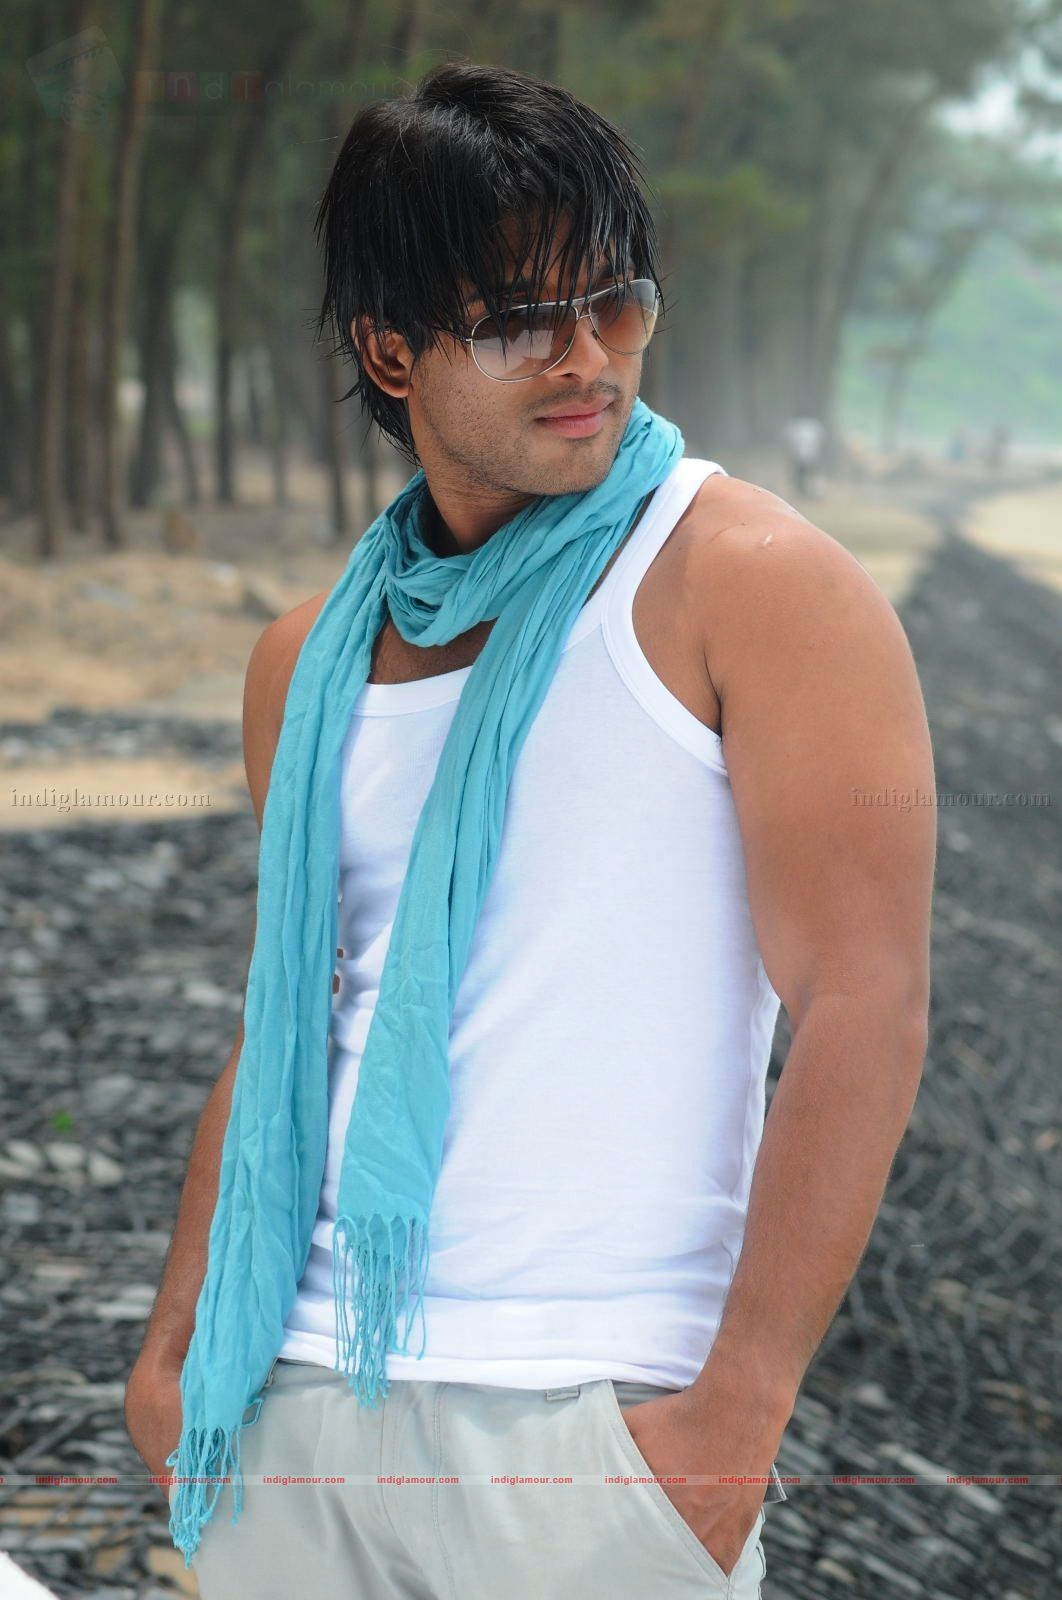 Allu Arjun Actor HD photos,image,pics,stills and picture